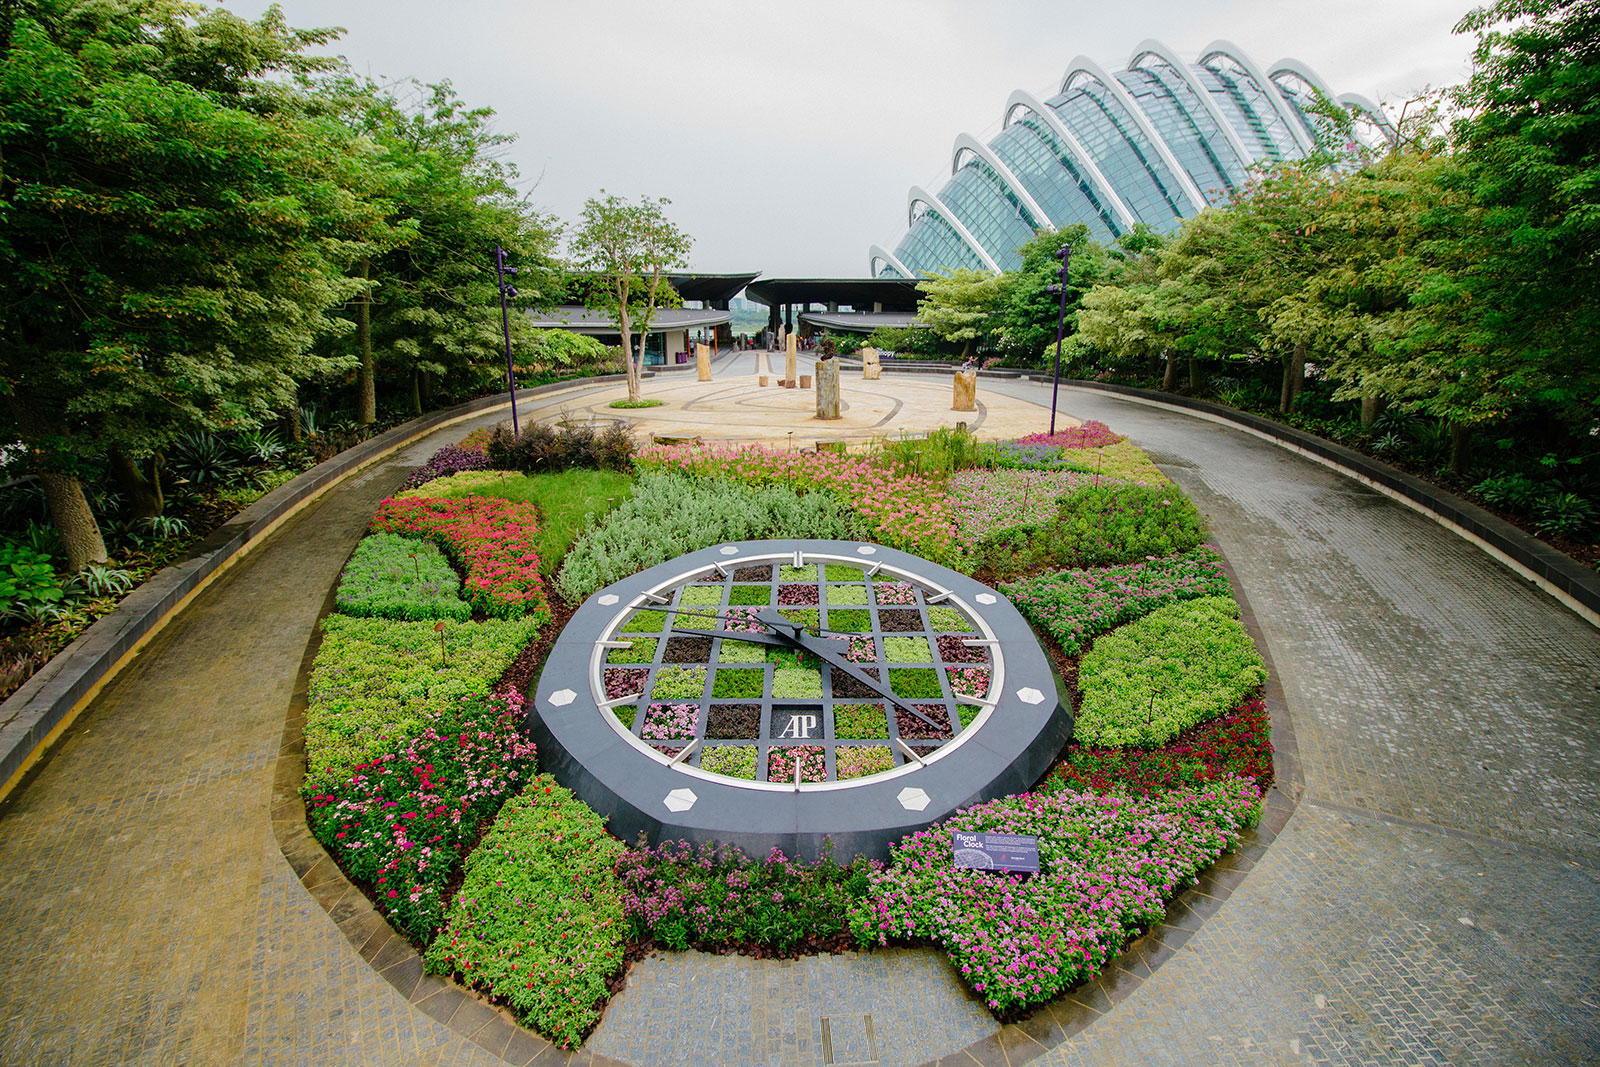 The Royal Oak Wristwatch The Audemars Piguet Floral Clock Is A Gift To  Singapore For Its 50th Year Of Independence On Display At Gardens By The Bay